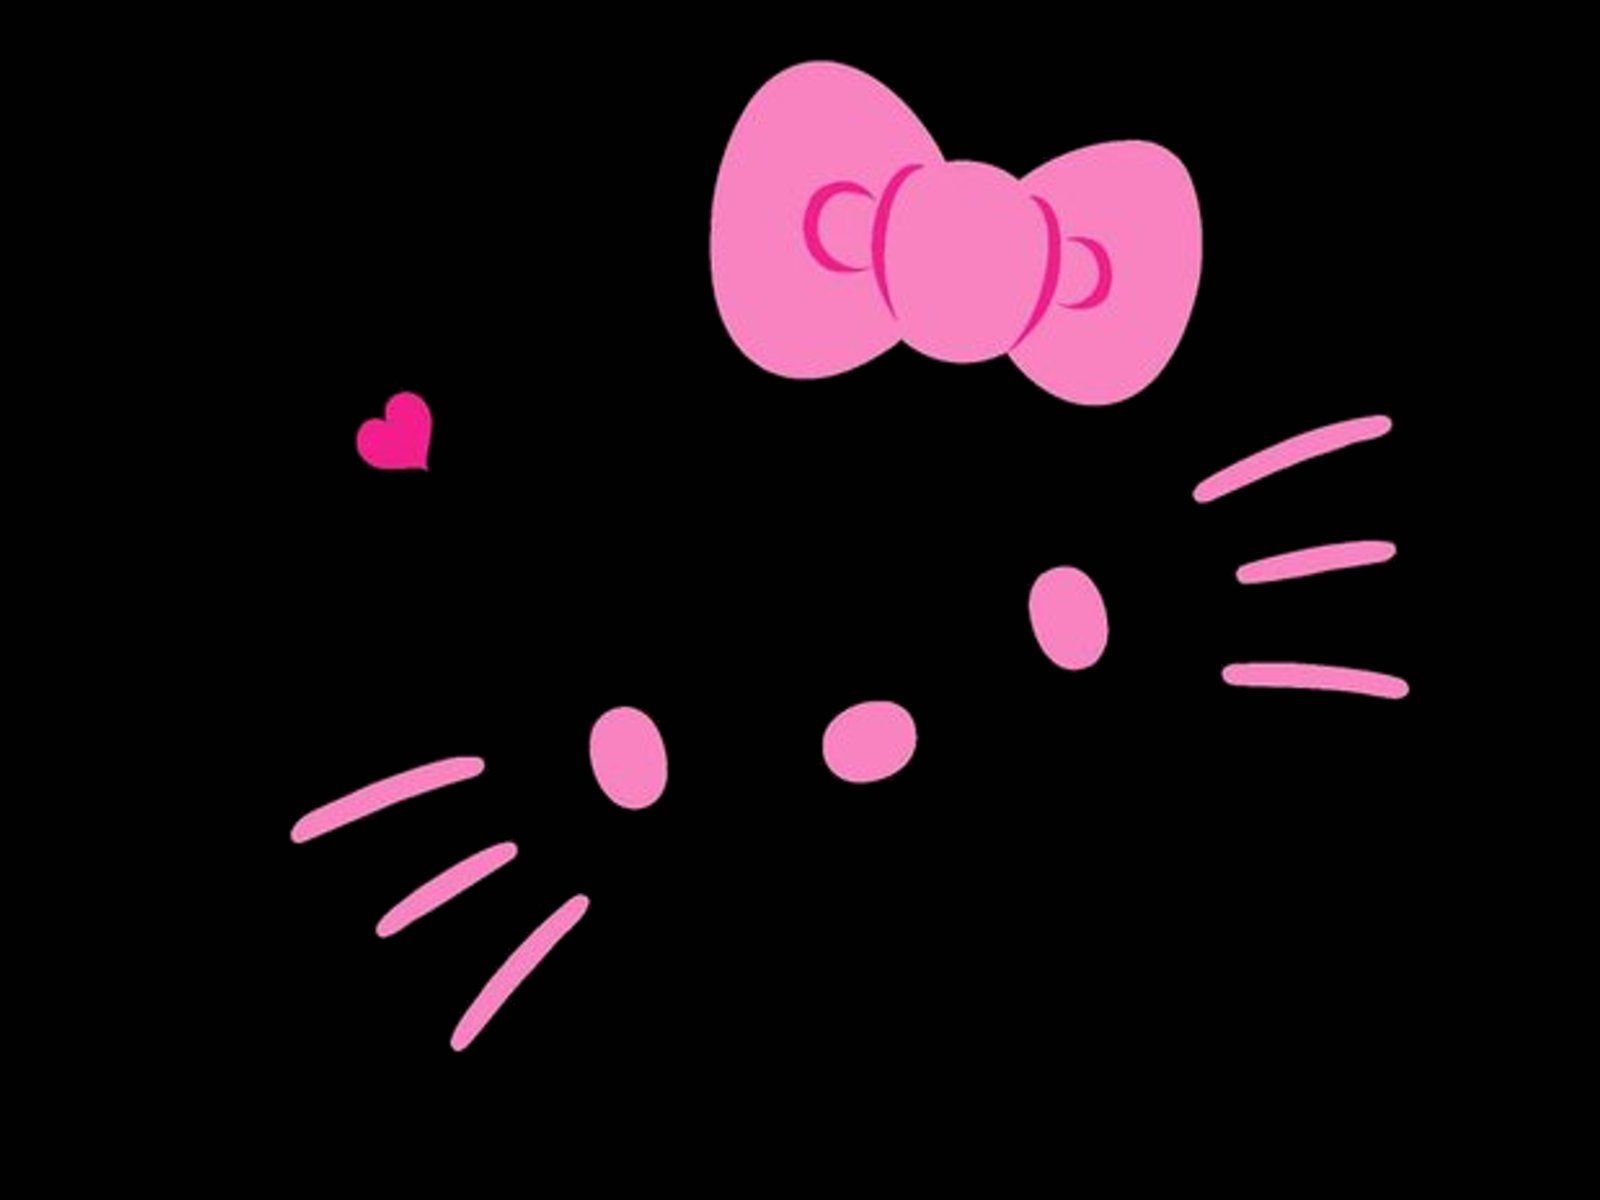 51 Hello Kitty Wallpapers Backgrounds Wallpaper Abyss Hello Kitty Pictures Hello Kitty Images Hello Kitty Backgrounds